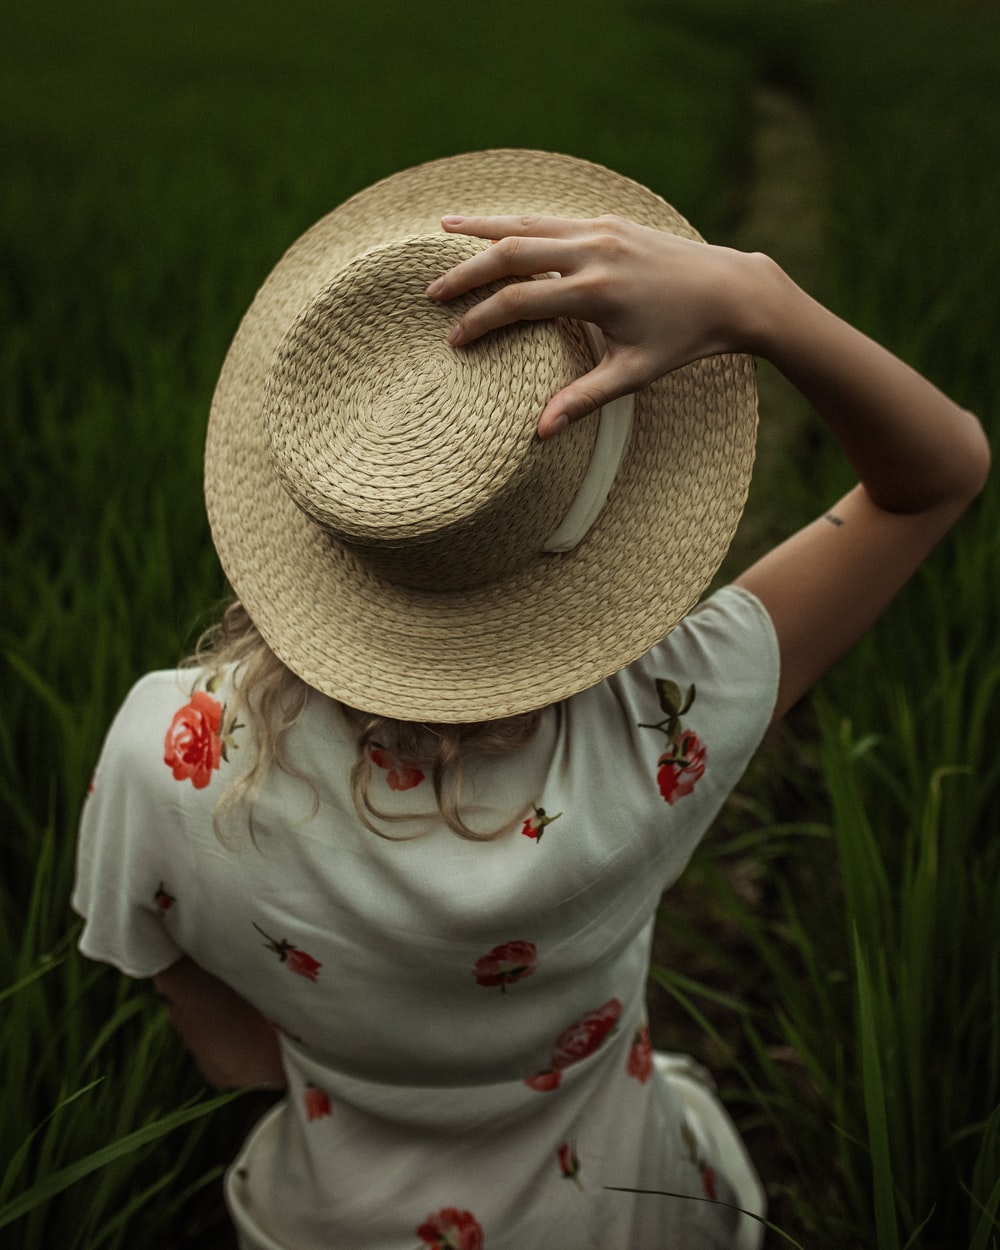 girl in white and red floral dress wearing brown straw hat standing on green grass field